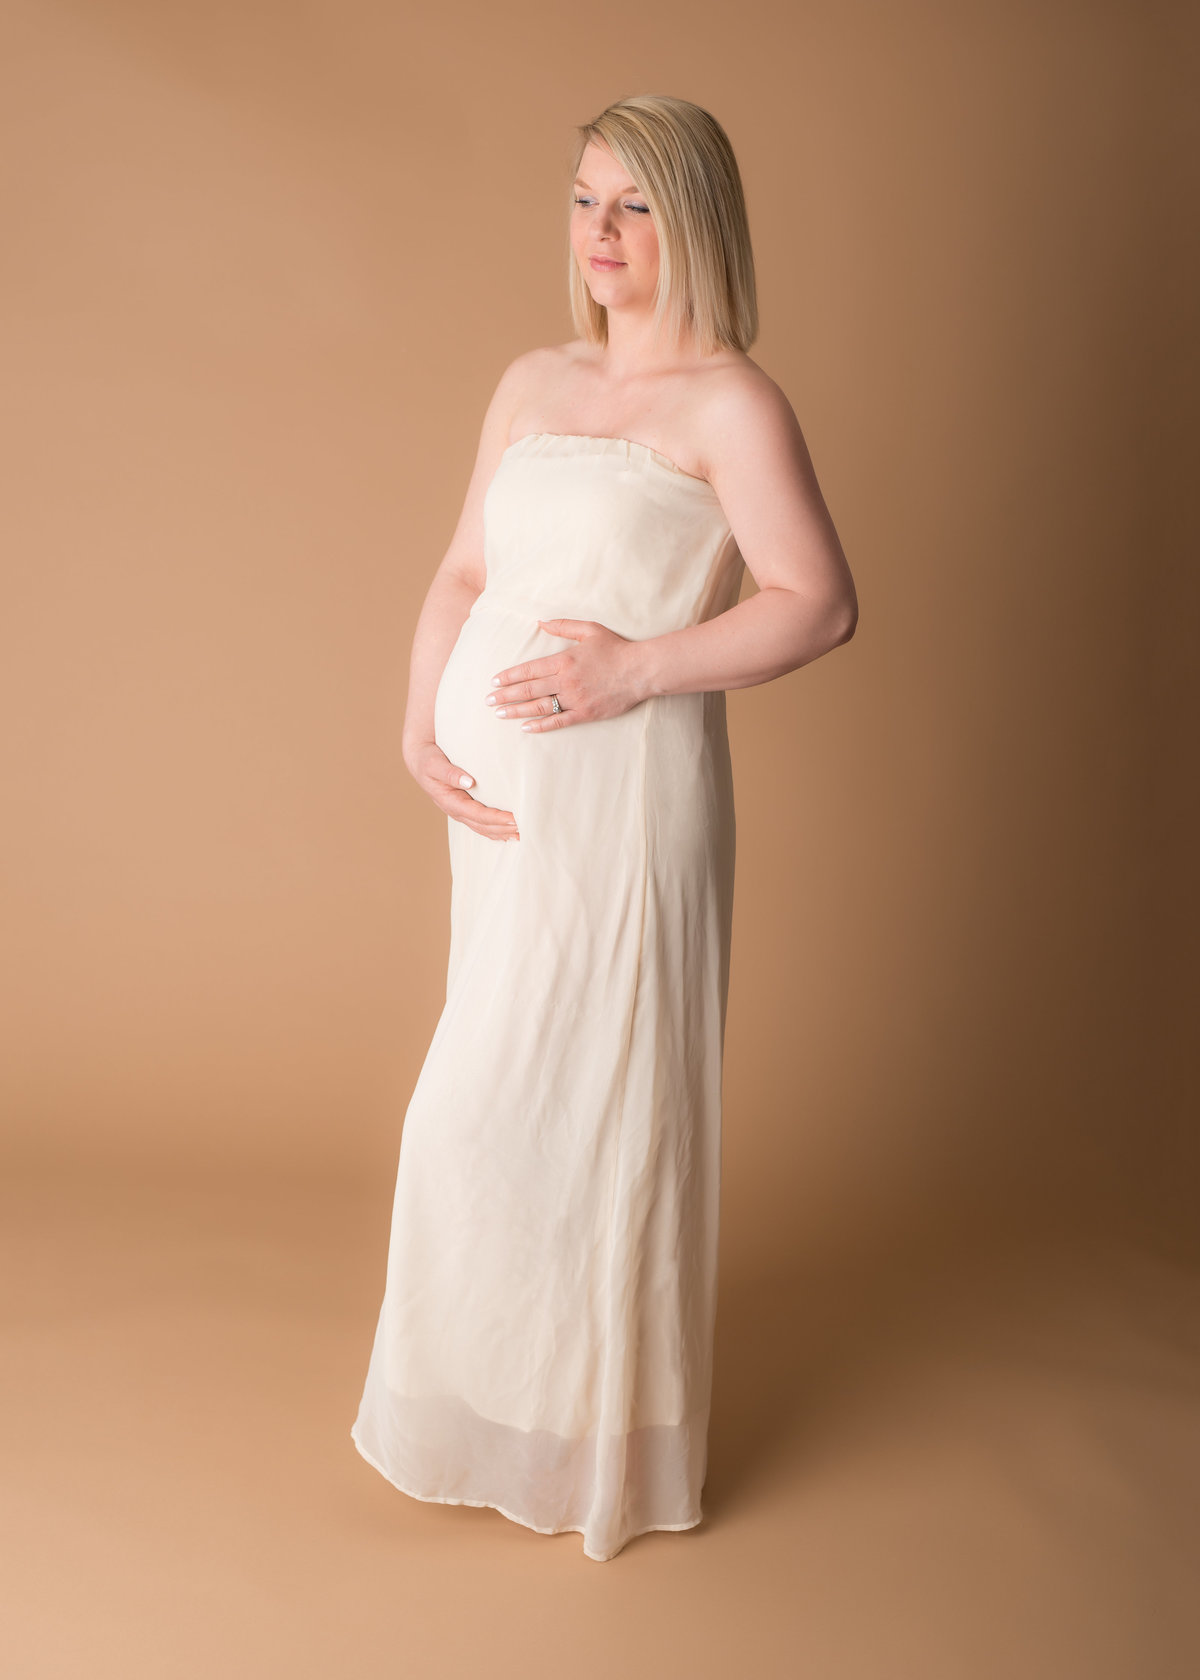 Fresh_Cut_Photography_Alberta_Maternity_21